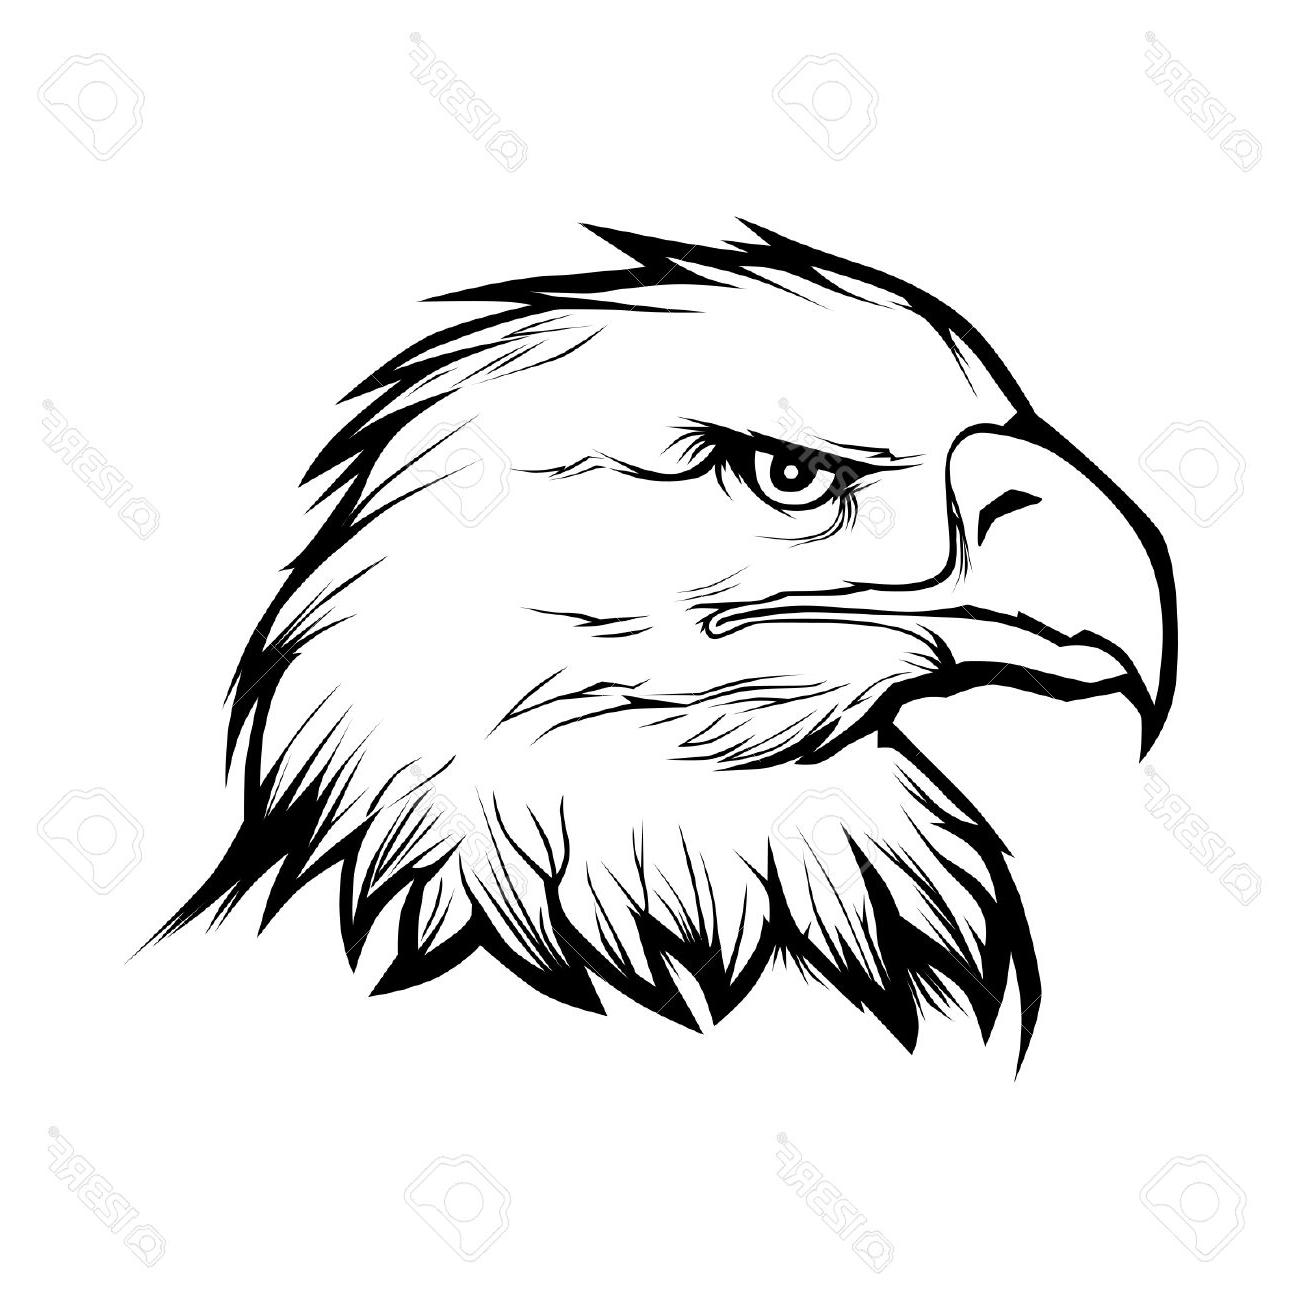 Eagle head clipart black and white 5 » Clipart Station.